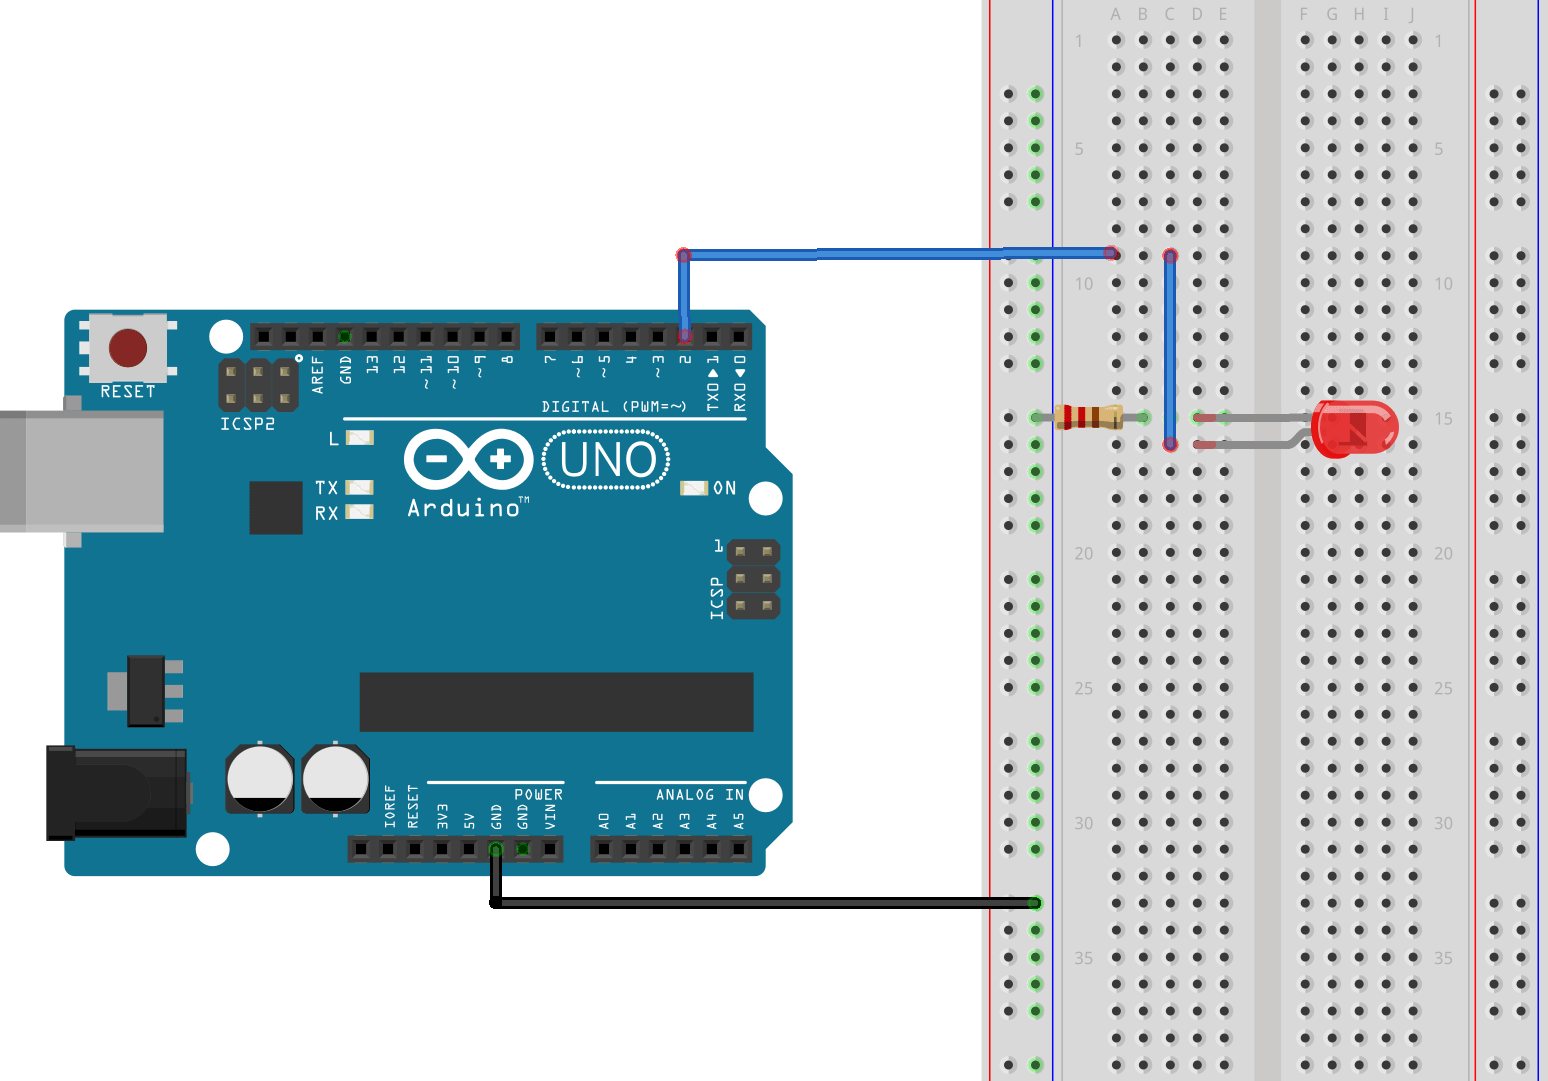 medium resolution of to change the brightness of the led the program will vary the duty cycle of the pwm signal output of pin 2